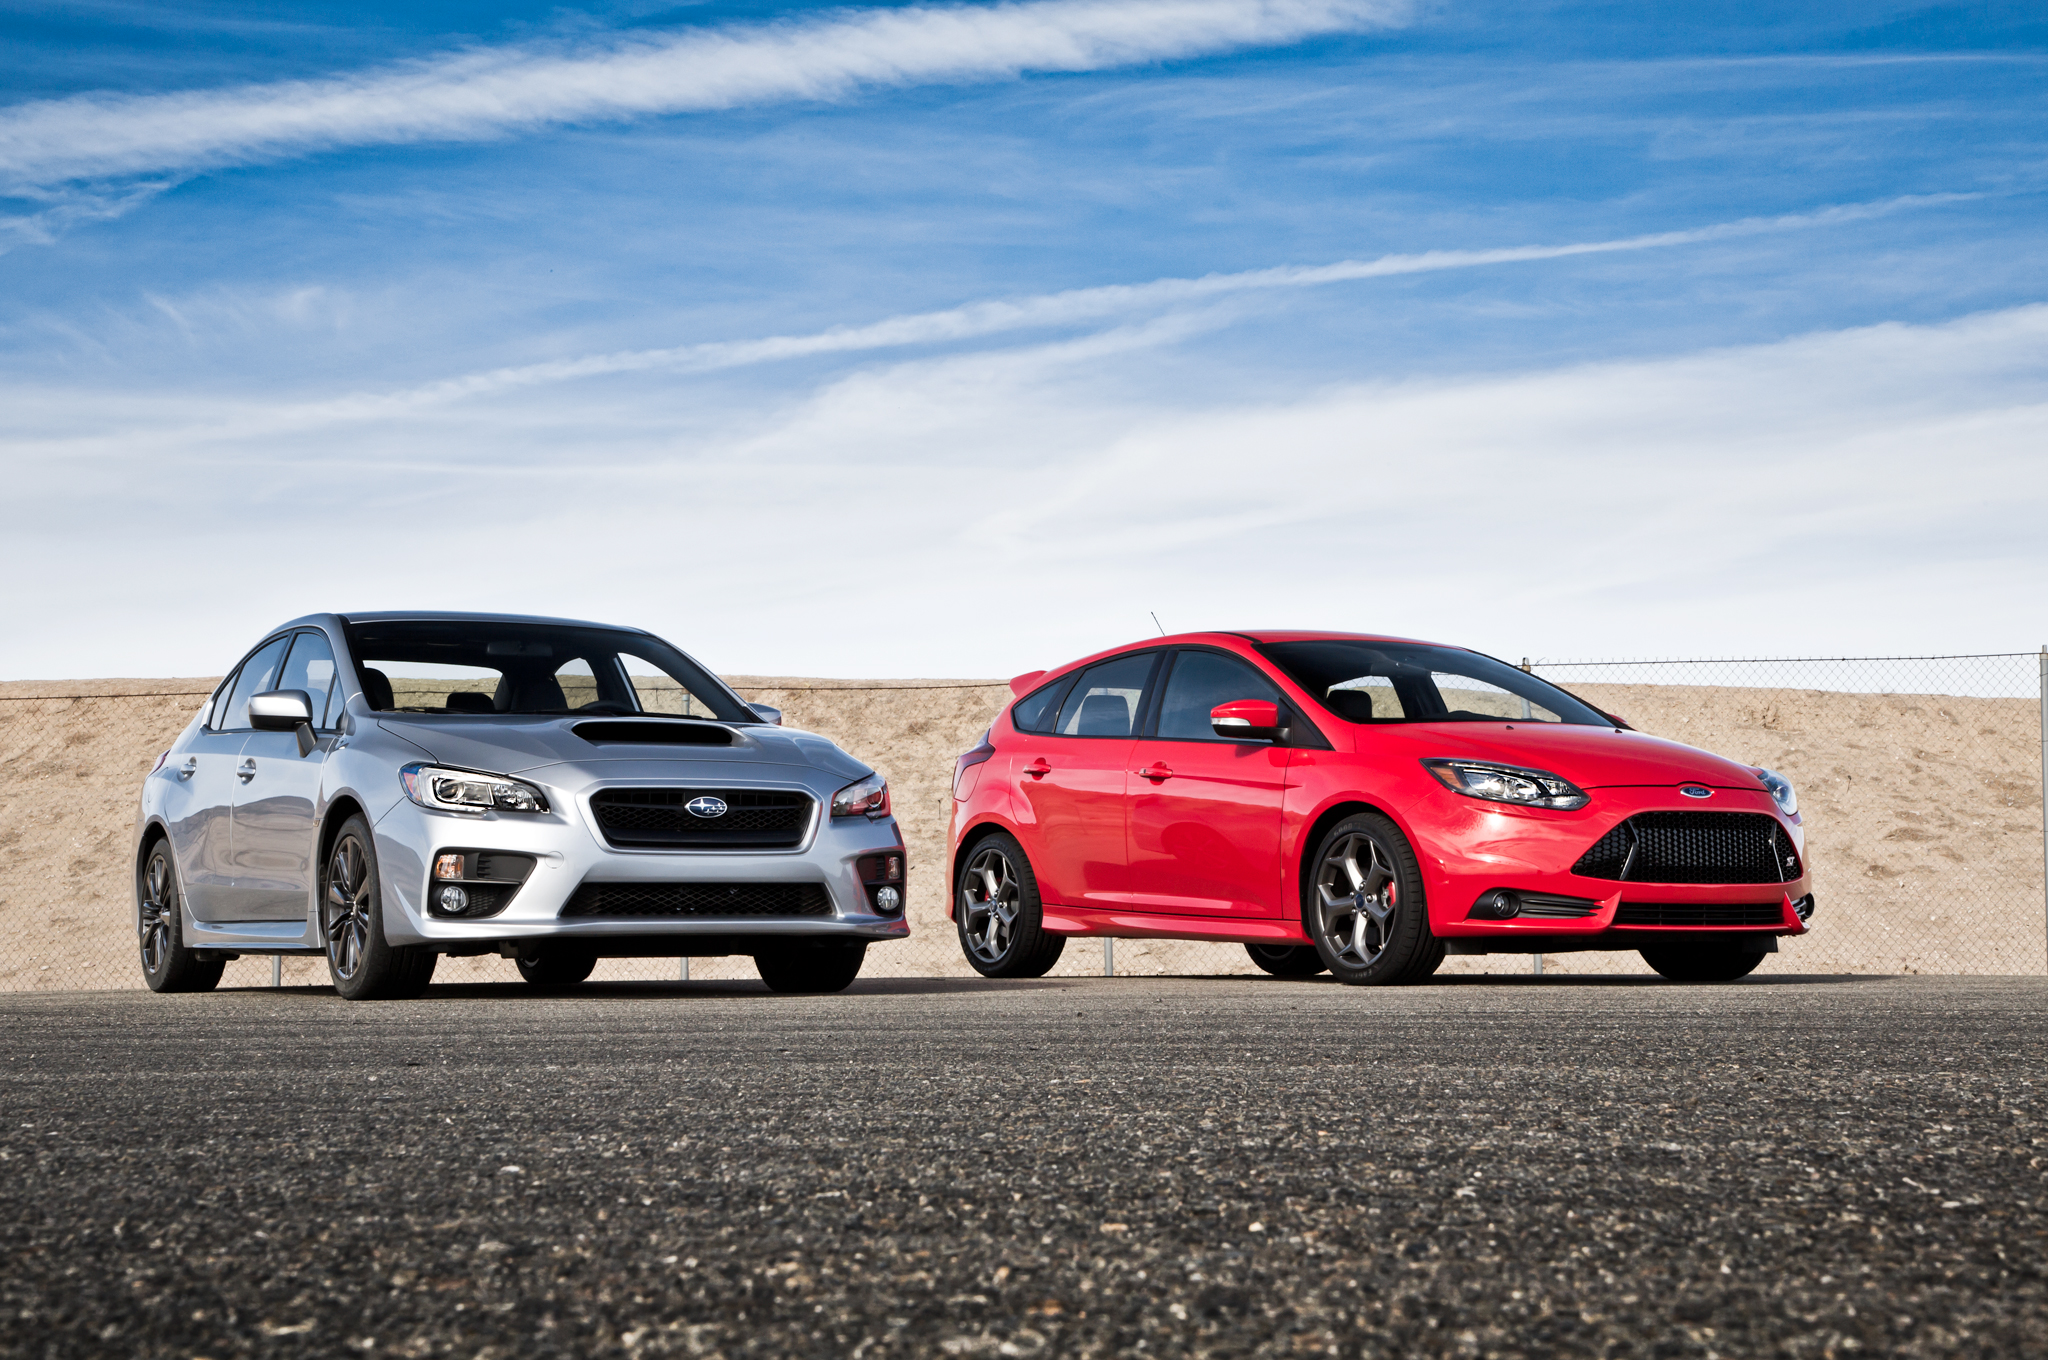 2014 Ford Focus St Vs 2015 Subaru Wrx Comparison Motor Trend